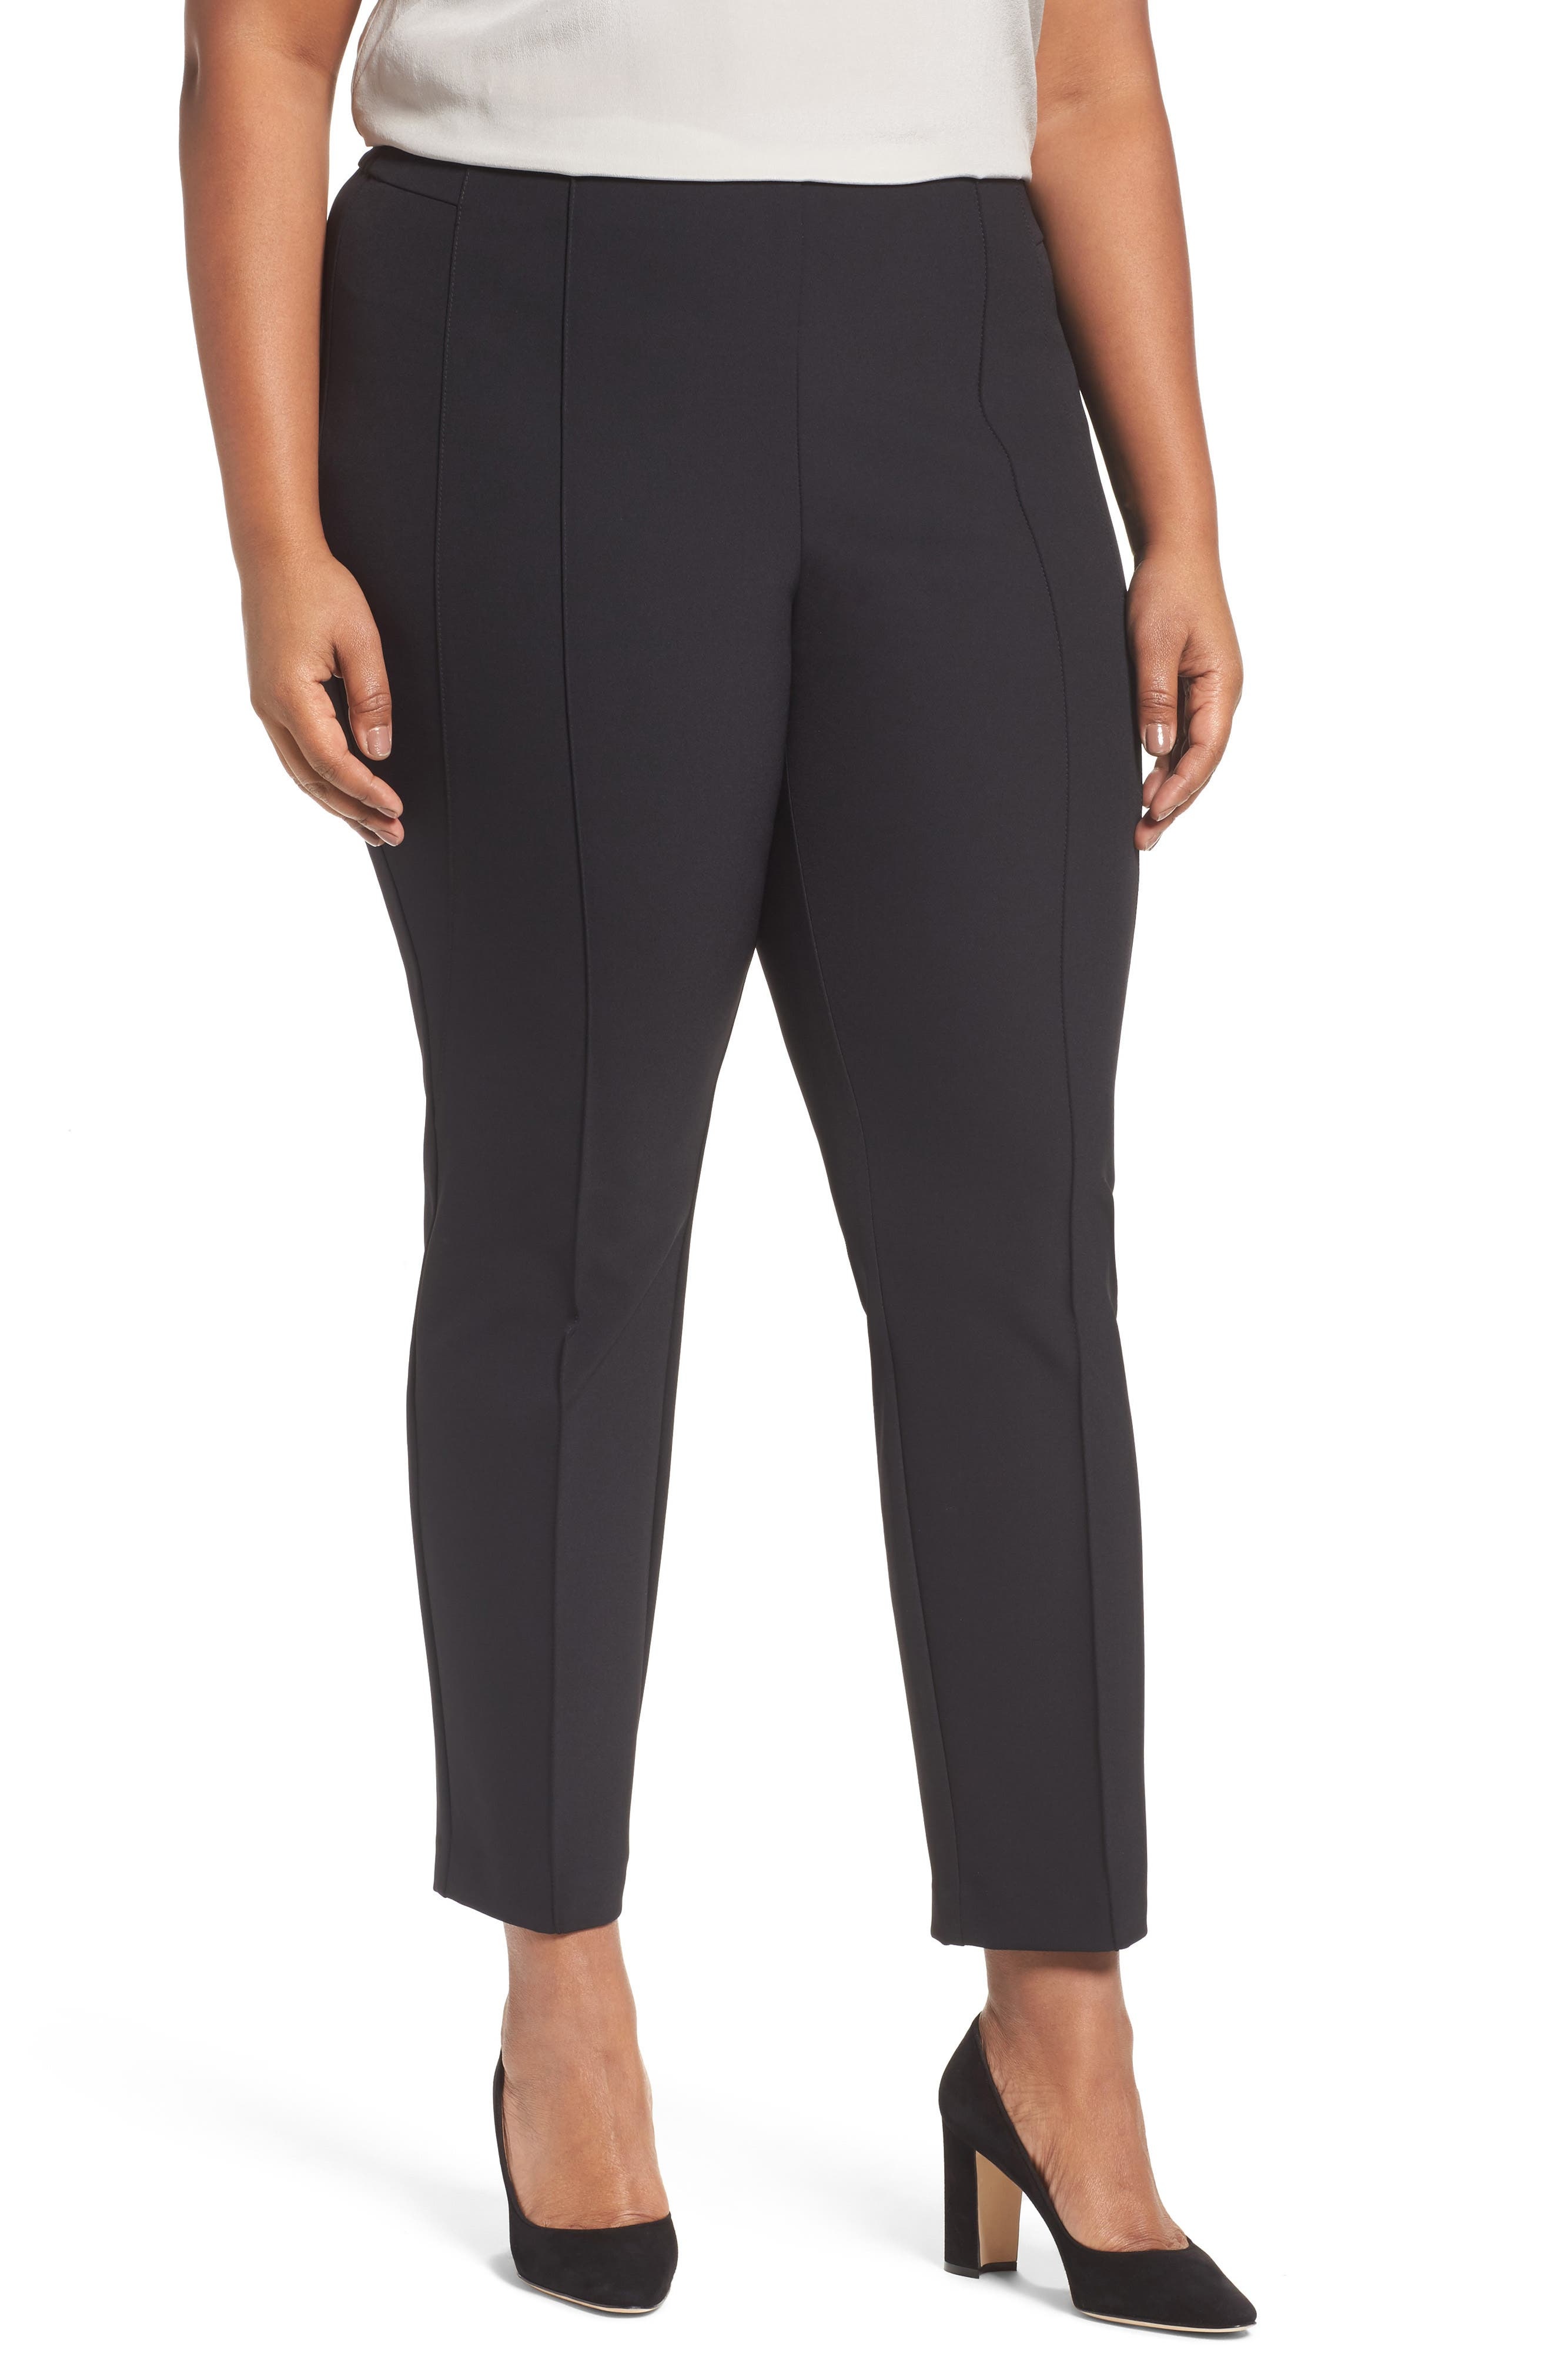 Alternate Image 1 Selected - Lafayette 148 New York City Pintuck Slim Pants (Plus Size)